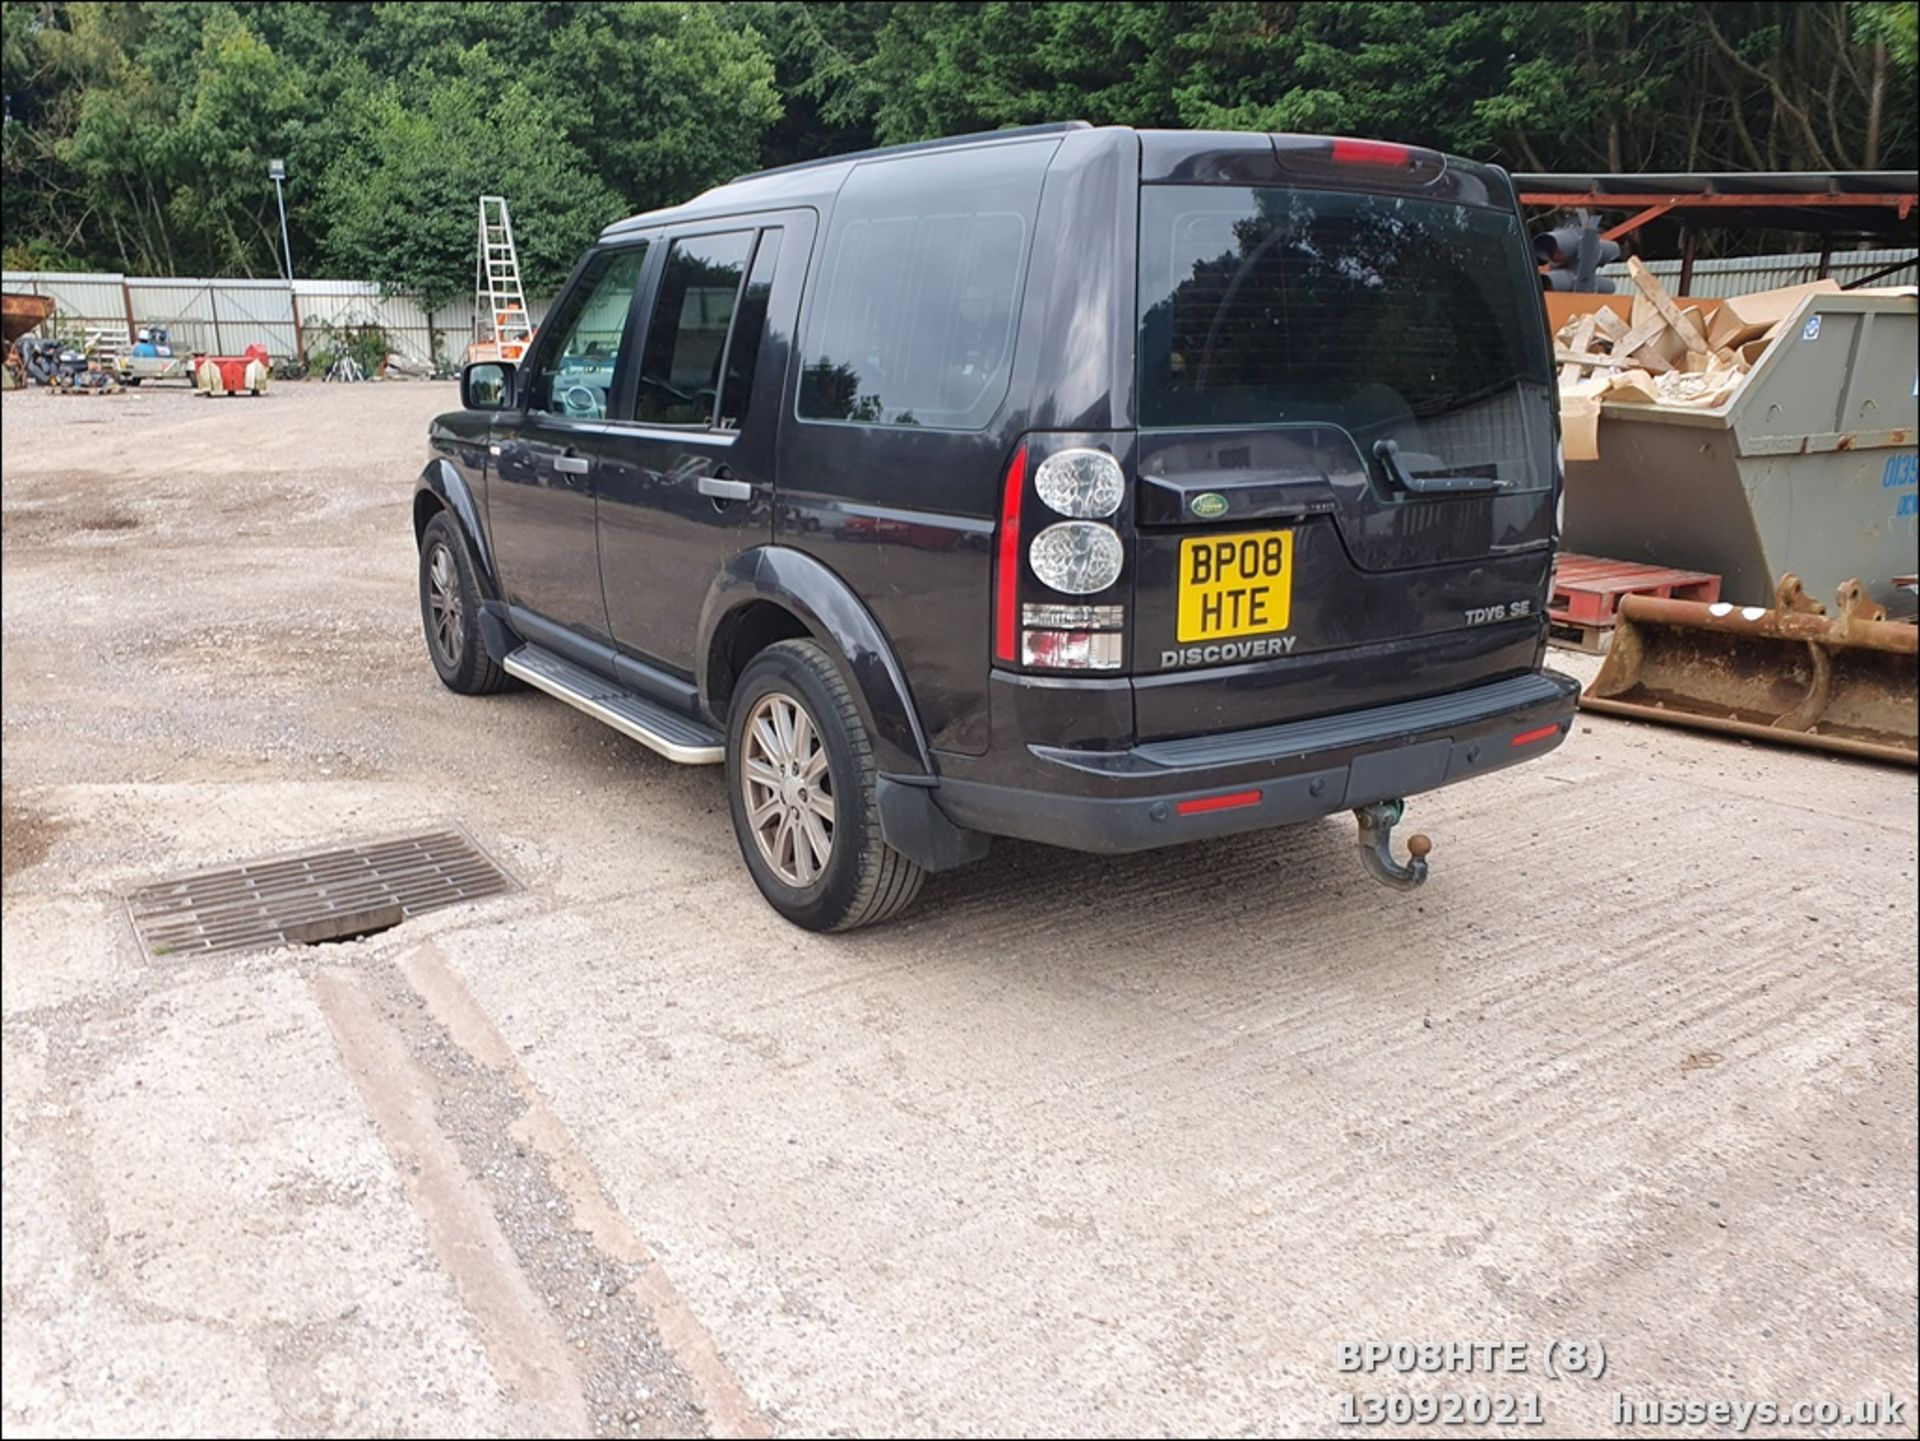 08/08 LAND ROVER DISCOVERY TDV6 SE A - 2720cc 5dr Estate (Brown, 190k) - Image 8 of 18